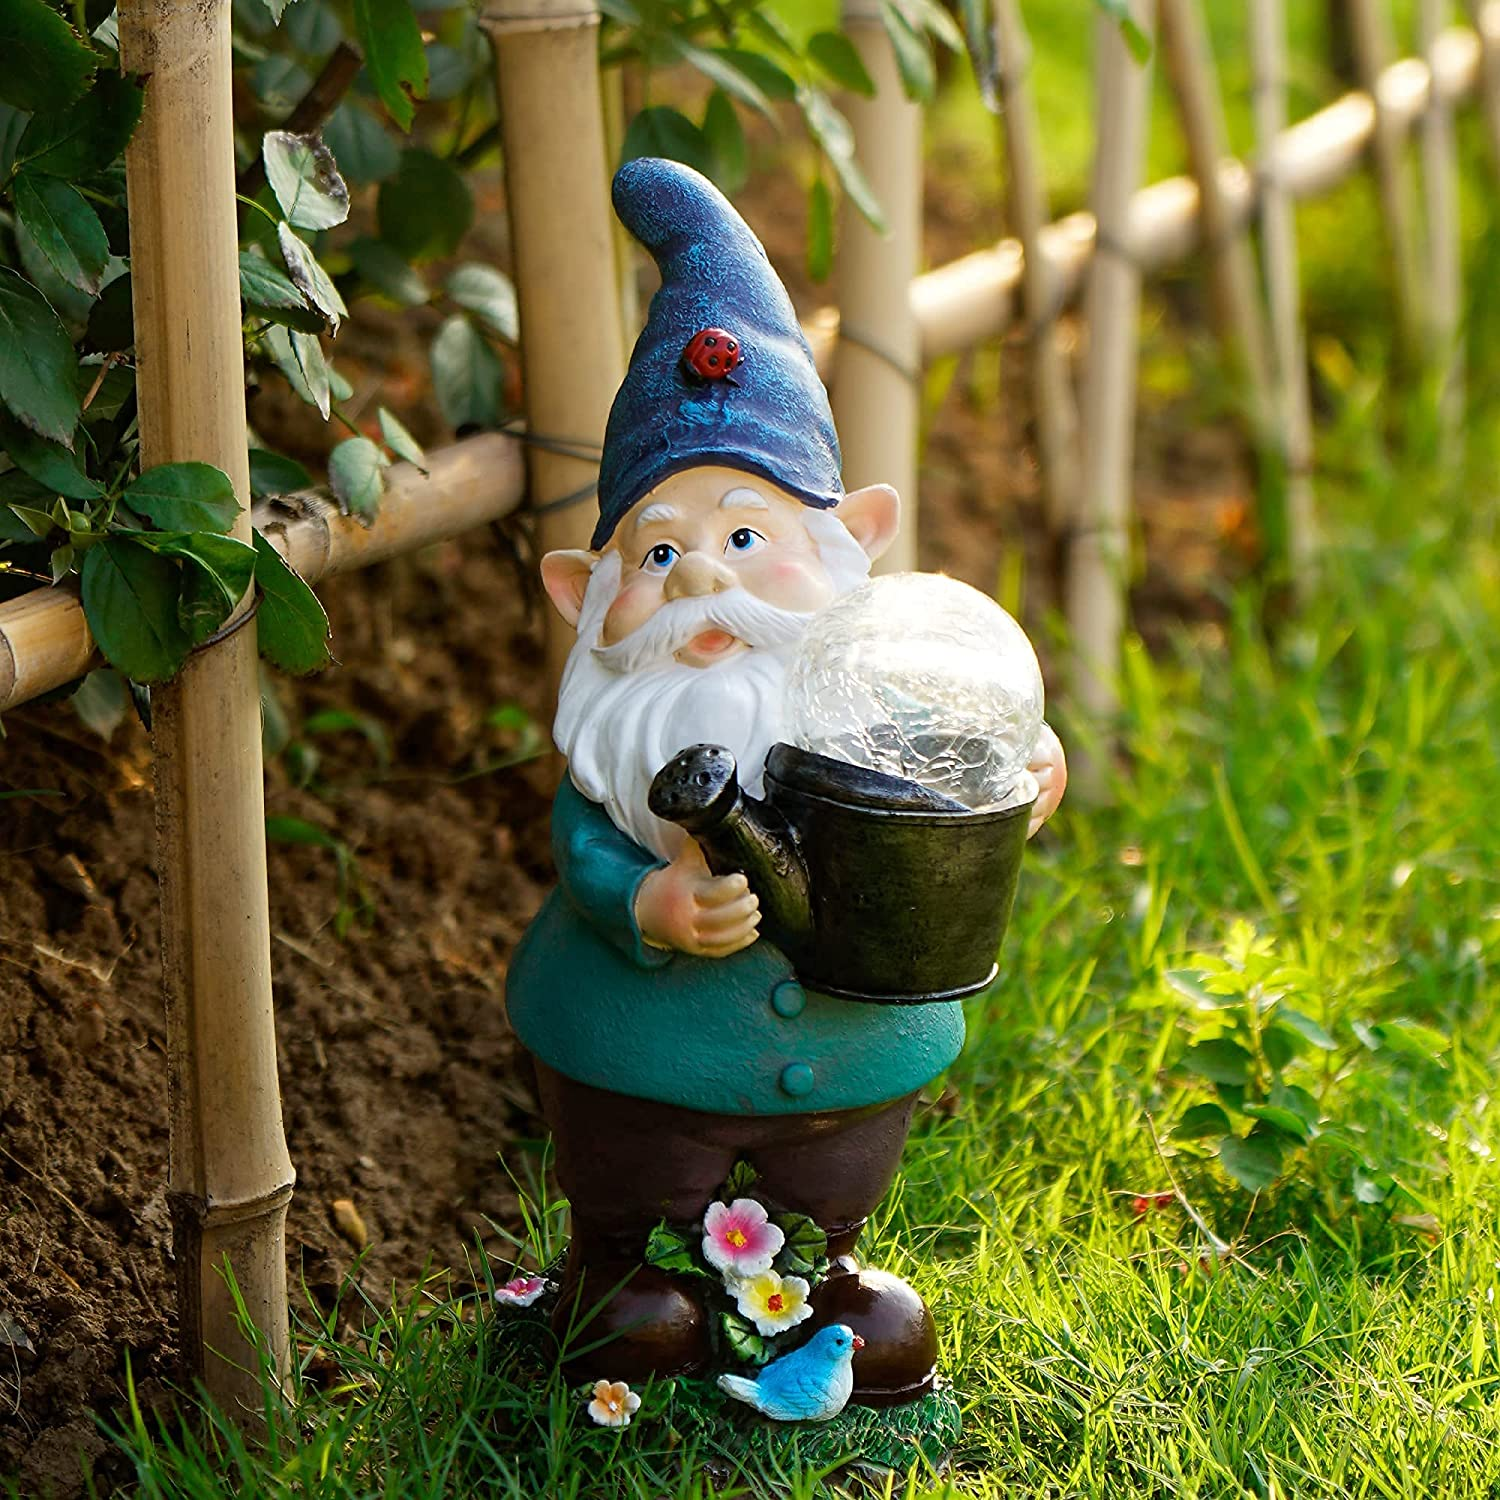 Daily bargain sale Iweshal Garden Gnome Statues In a popularity Solar Outdoor Gnomes